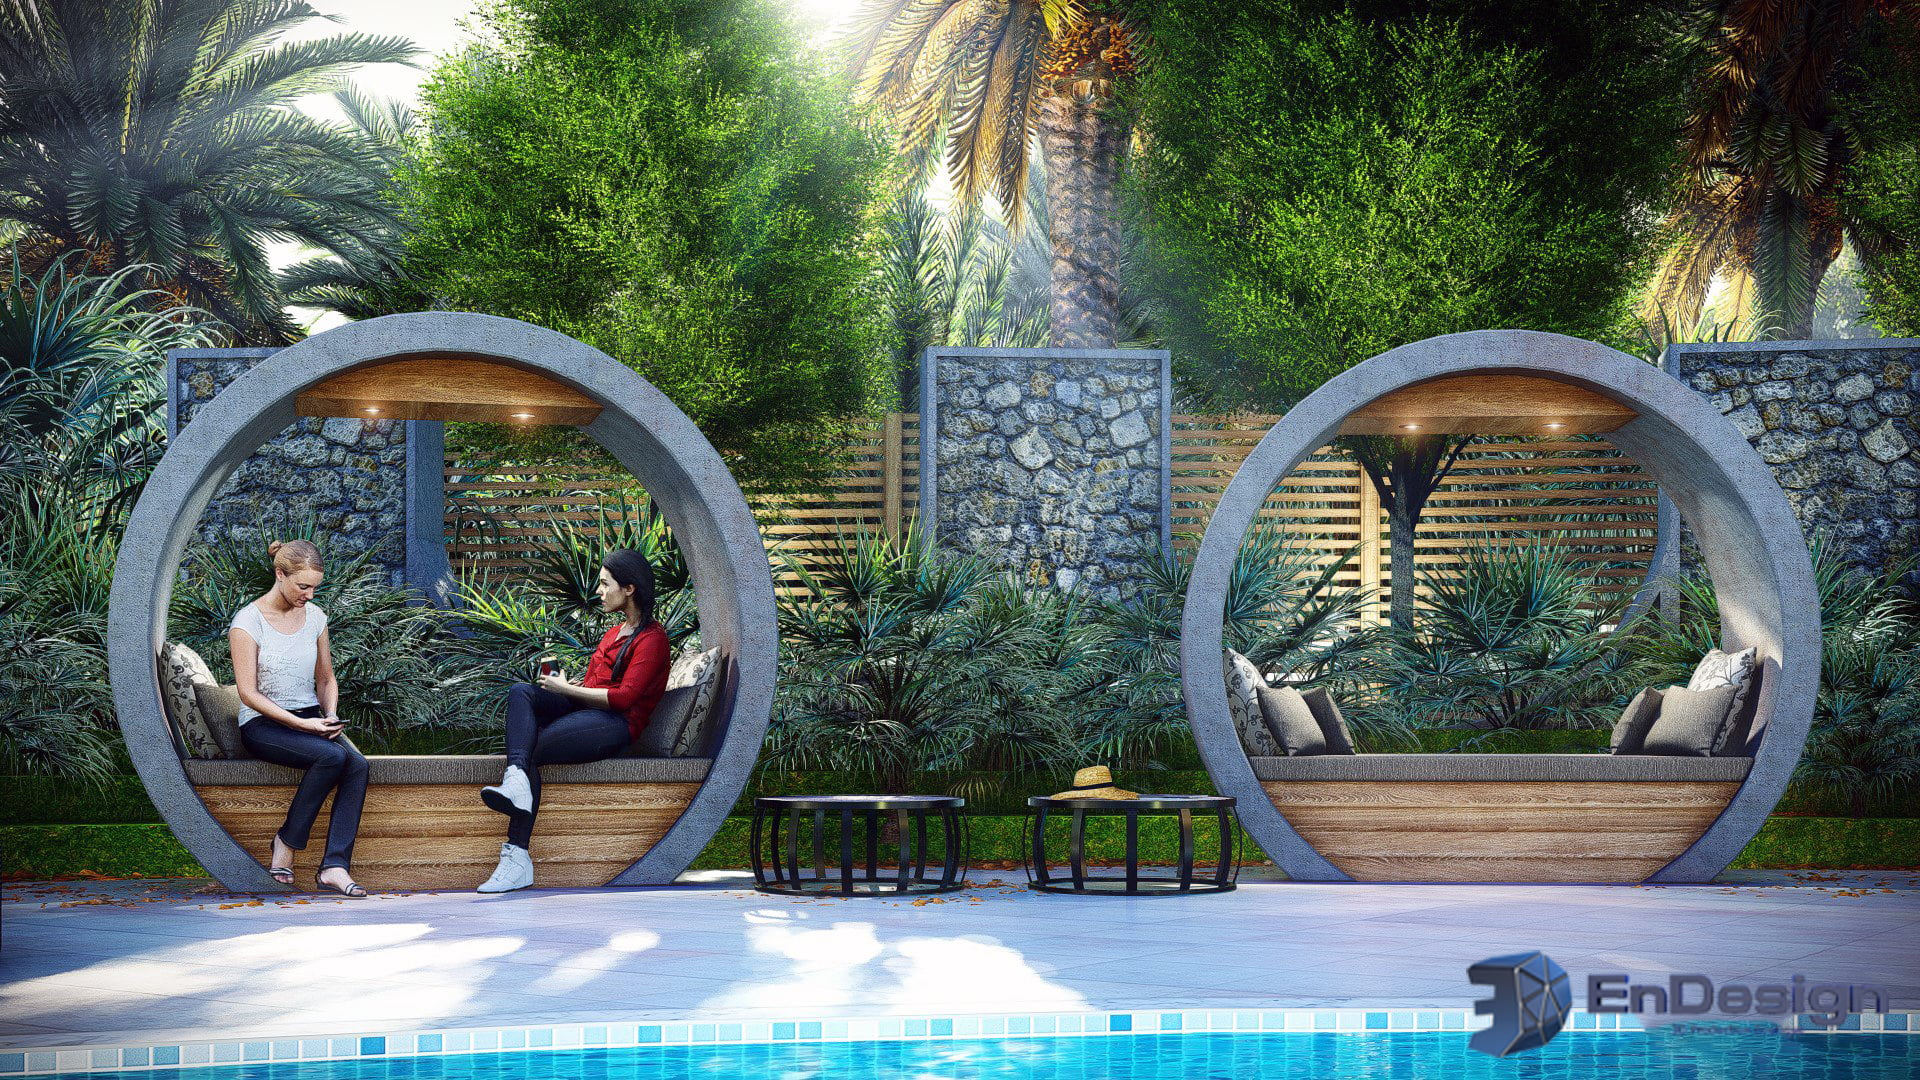 EnDesign outdoor pool seating - Greater Toronto Area 3D Rendering